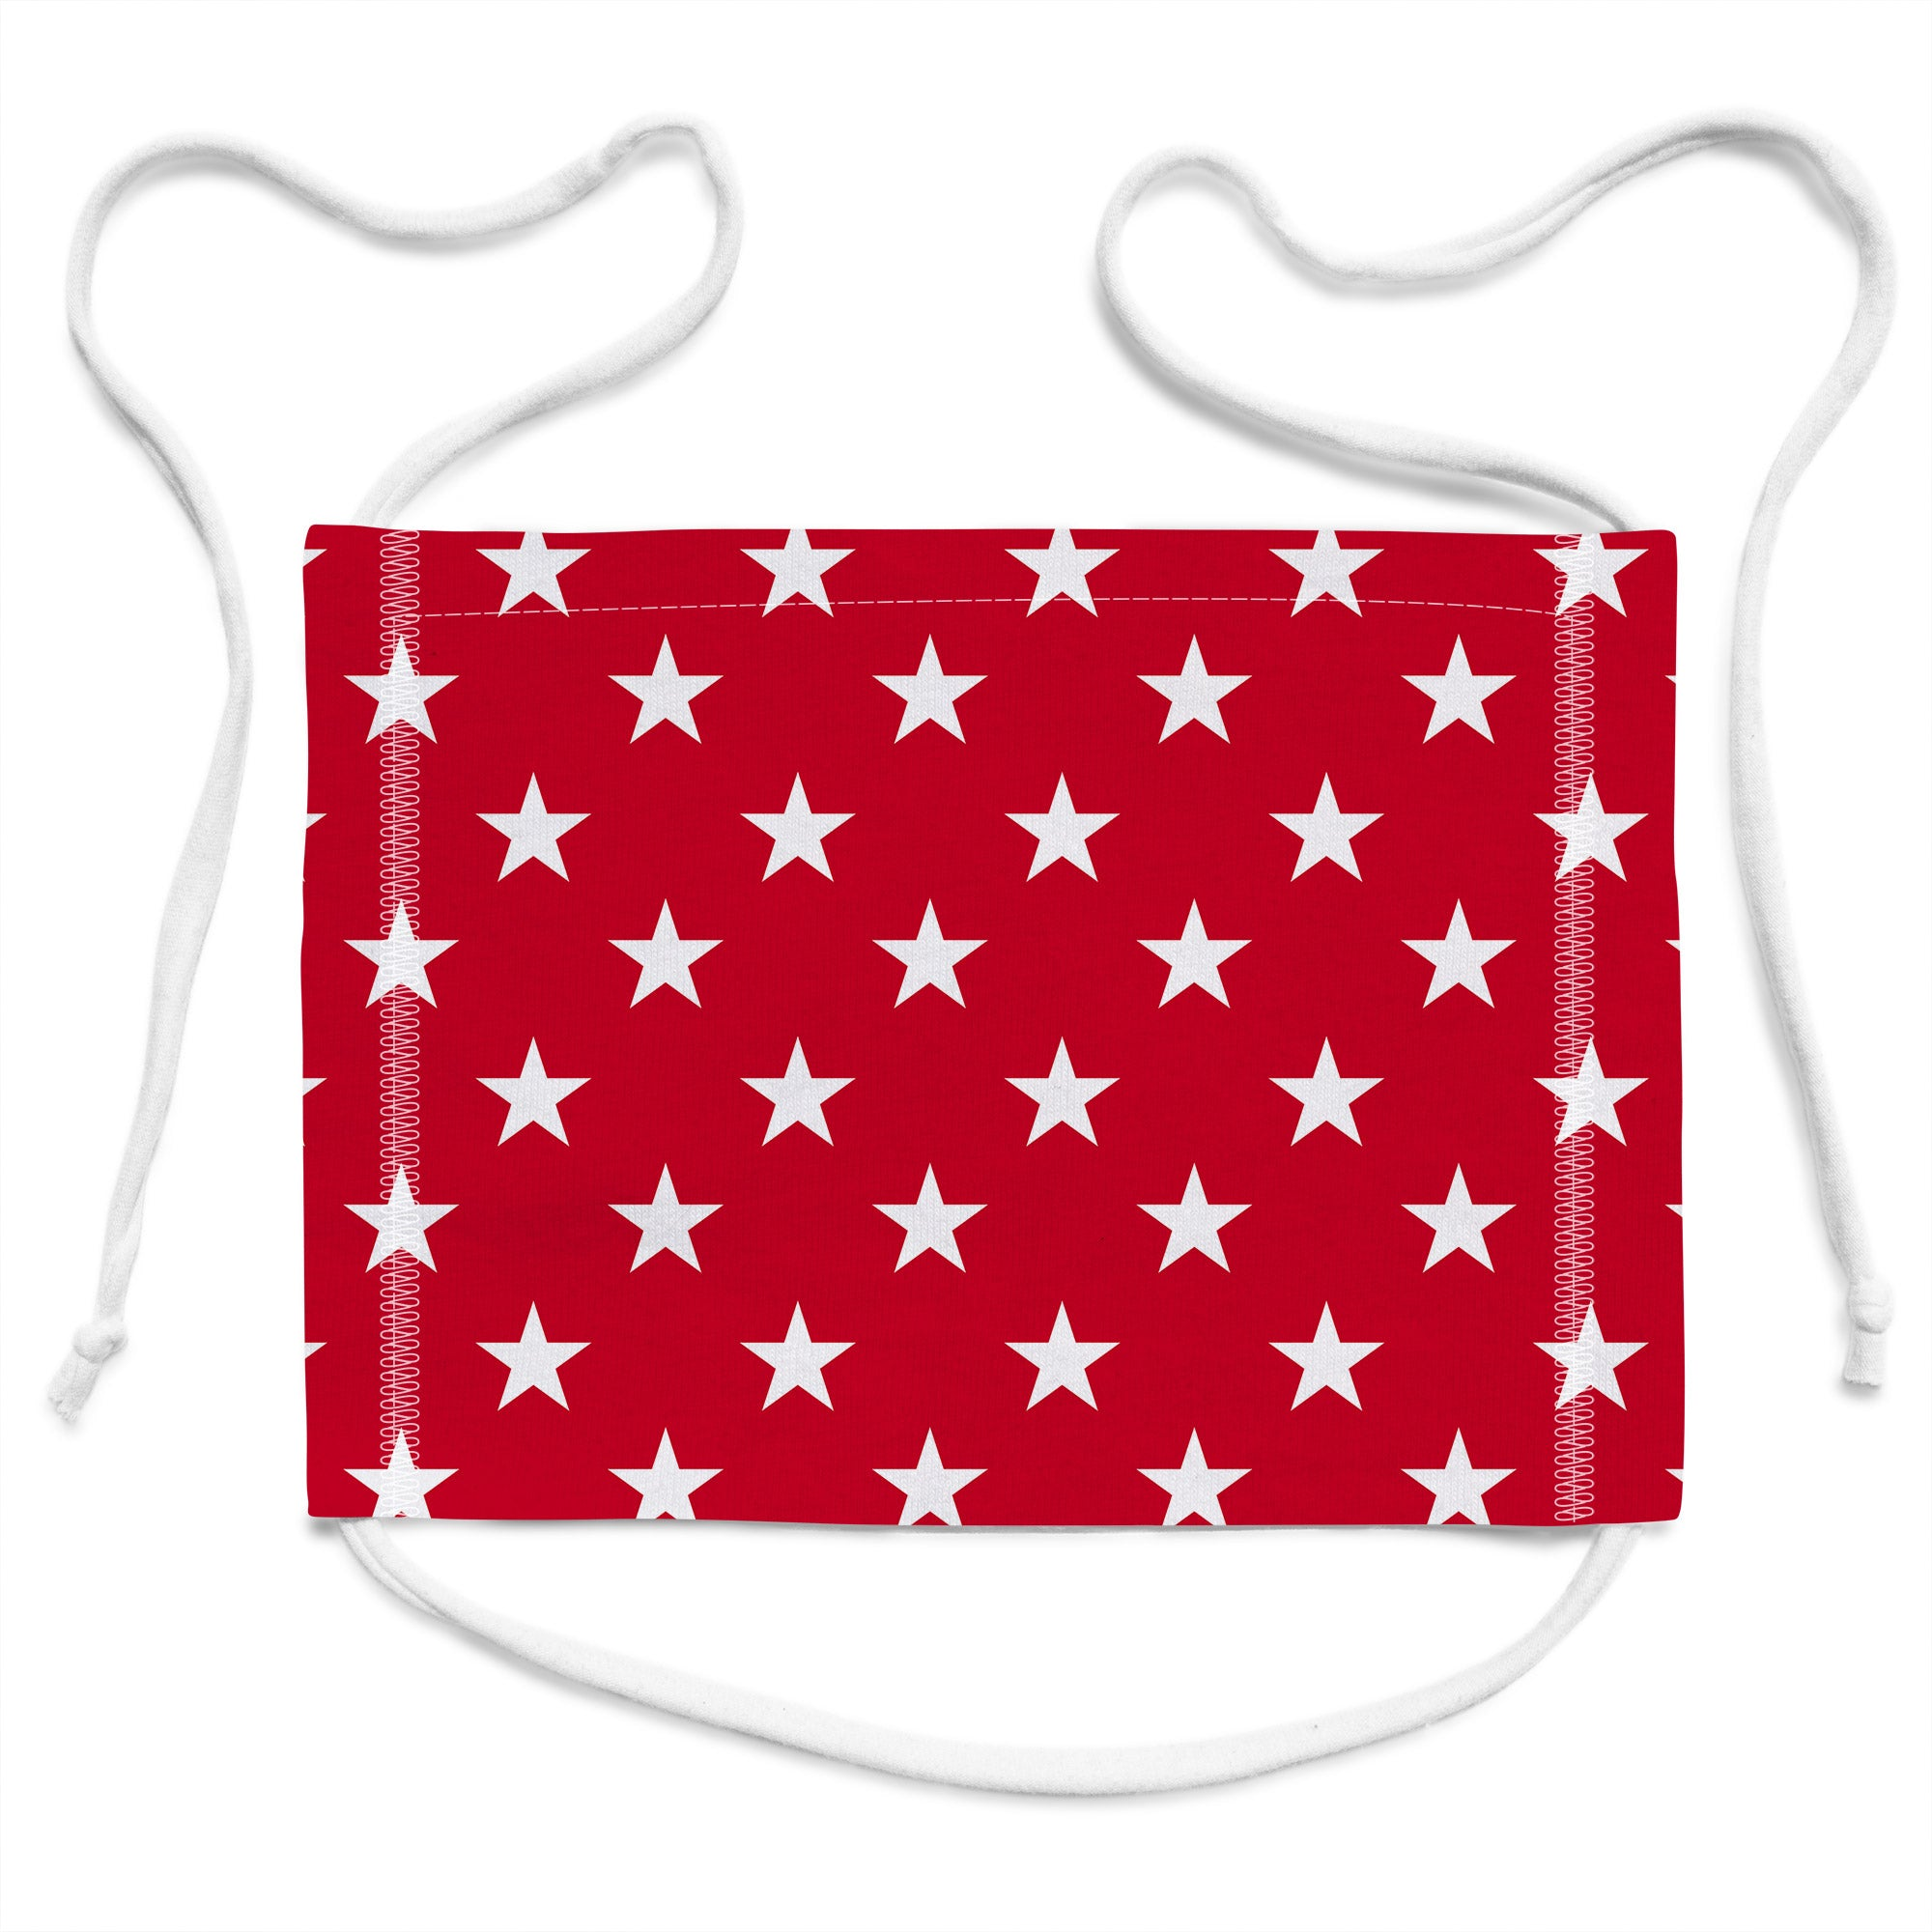 CHEAP Red Stars Face Mask 26660545847 – Clothing Accessories